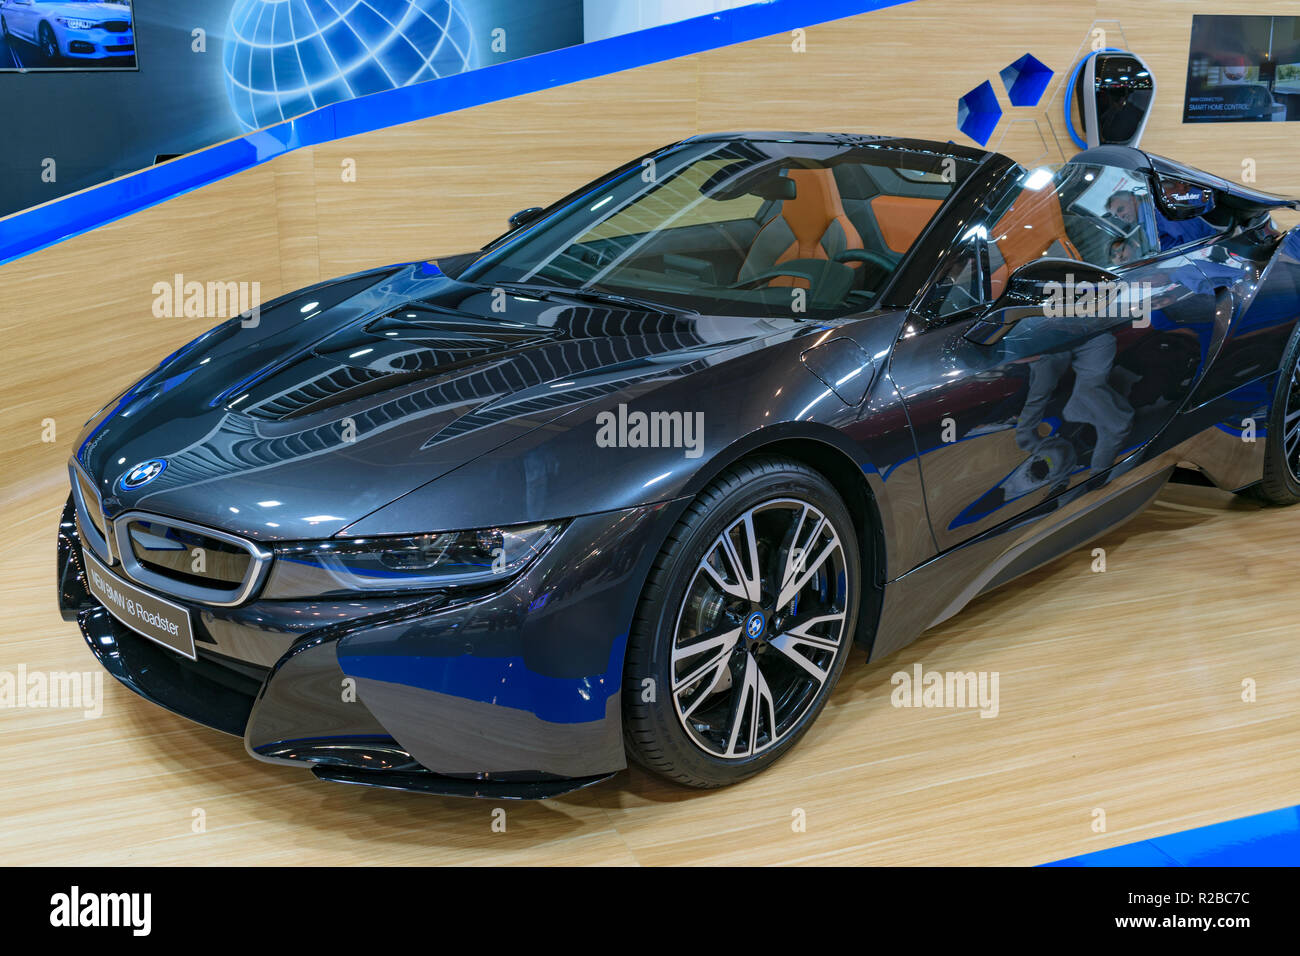 Ag. Kosmas, Greece - November 10 2018: BMW i8 Roadster - Stock Image